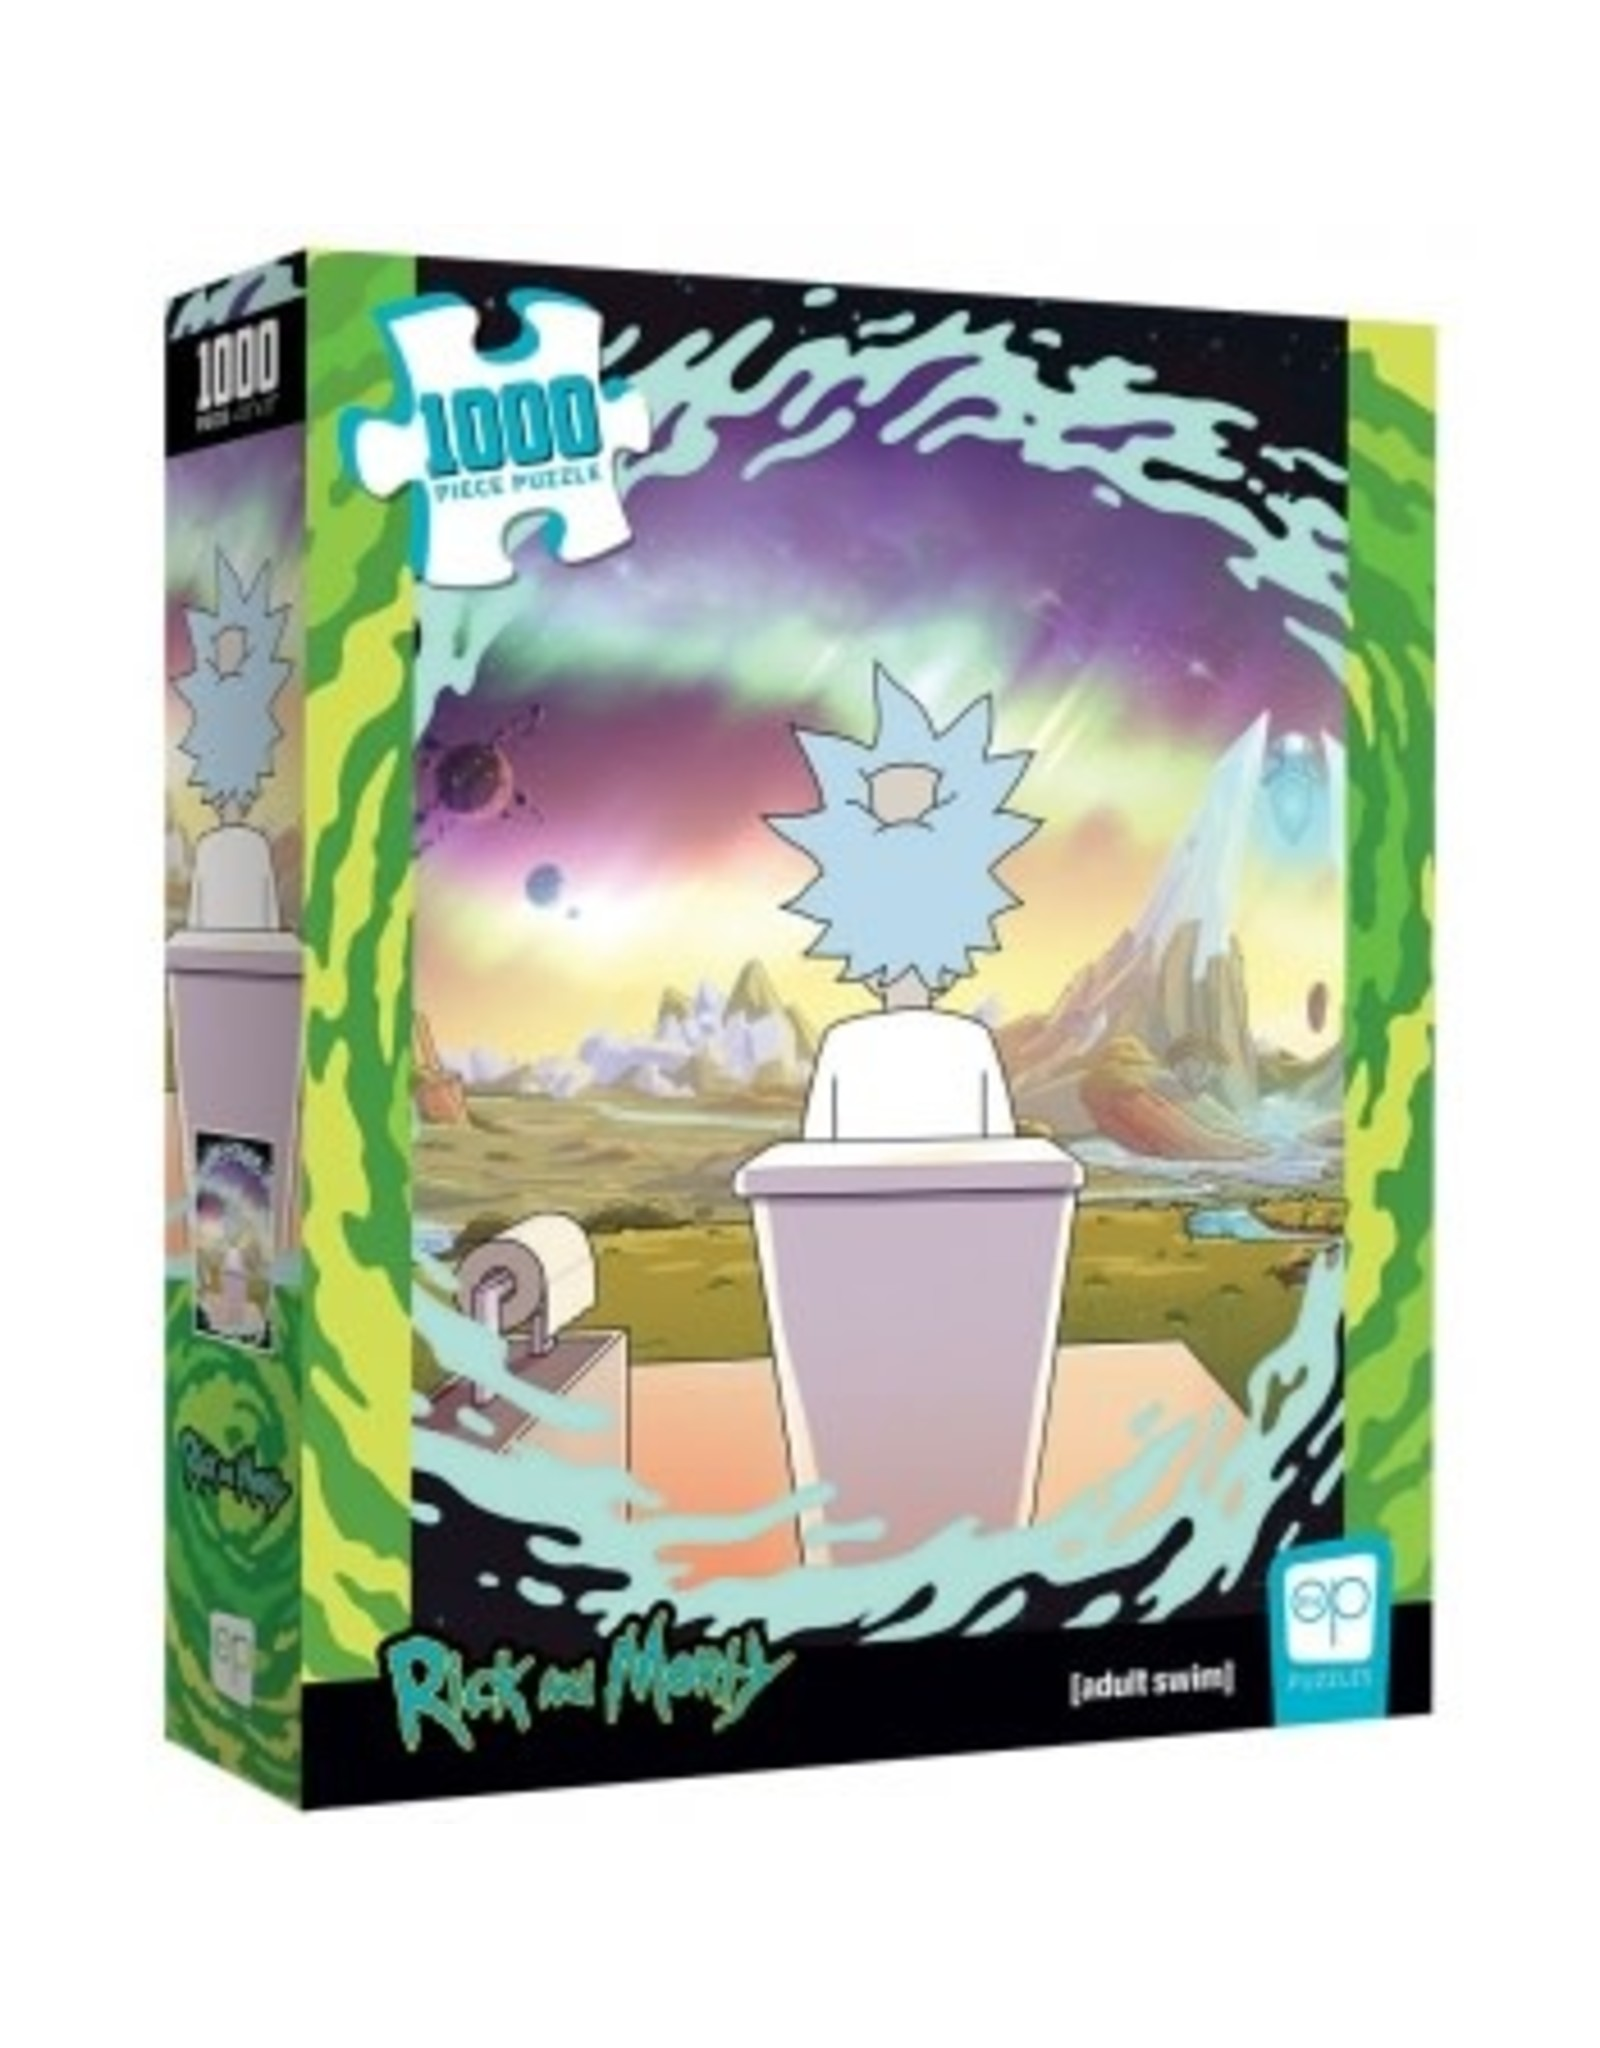 USAopoly RICK AND MORTY Puzzle 1000P - Shy Pooper